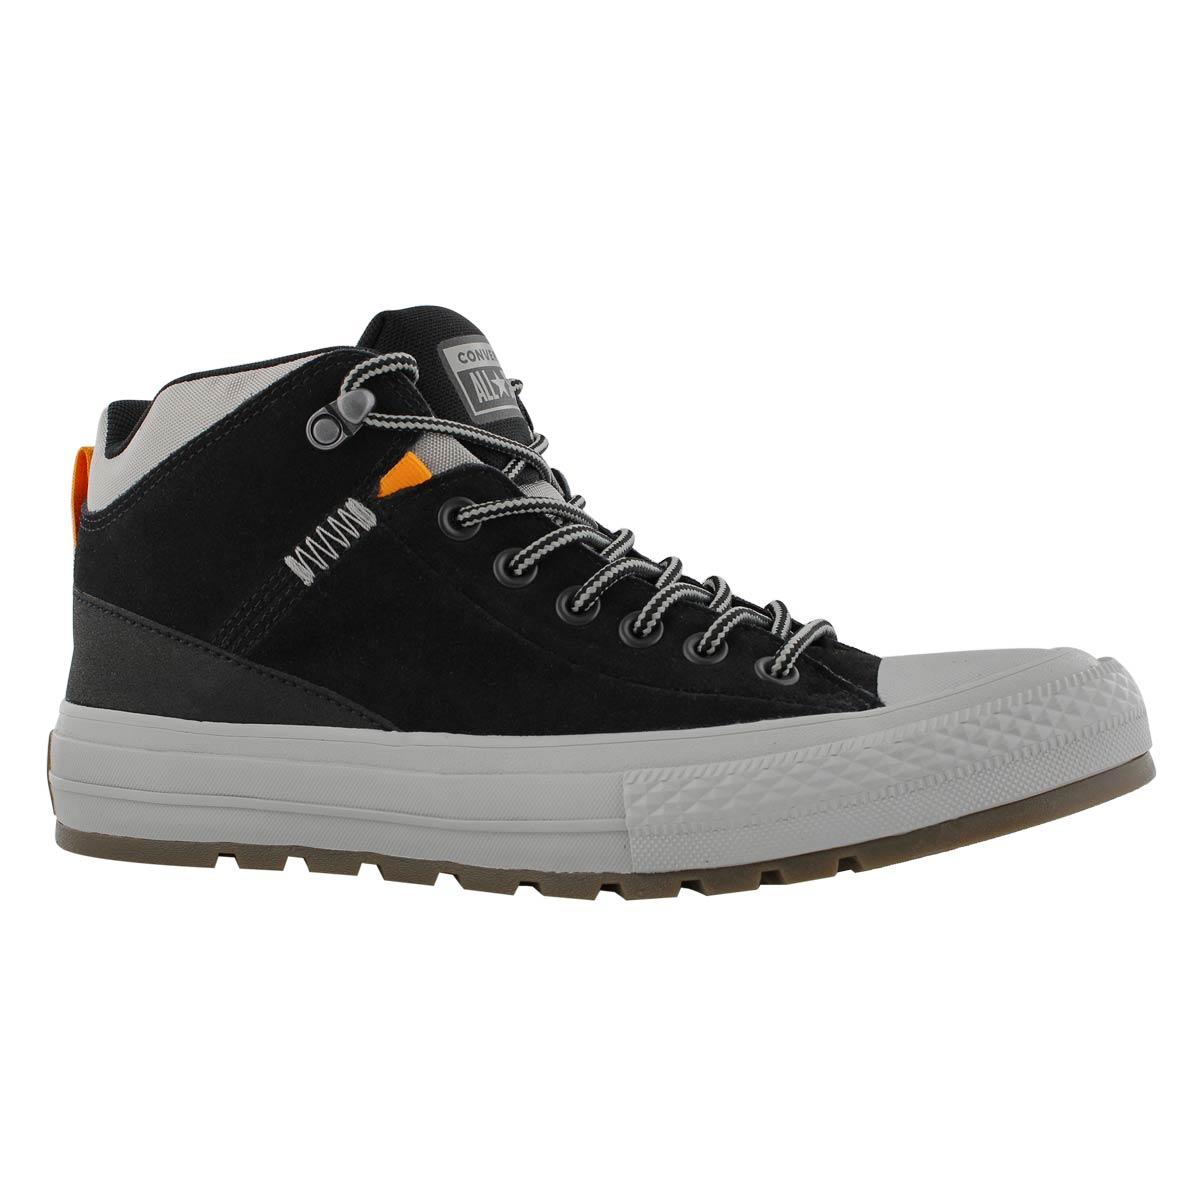 Mns CT A/S Street blk/blk boot